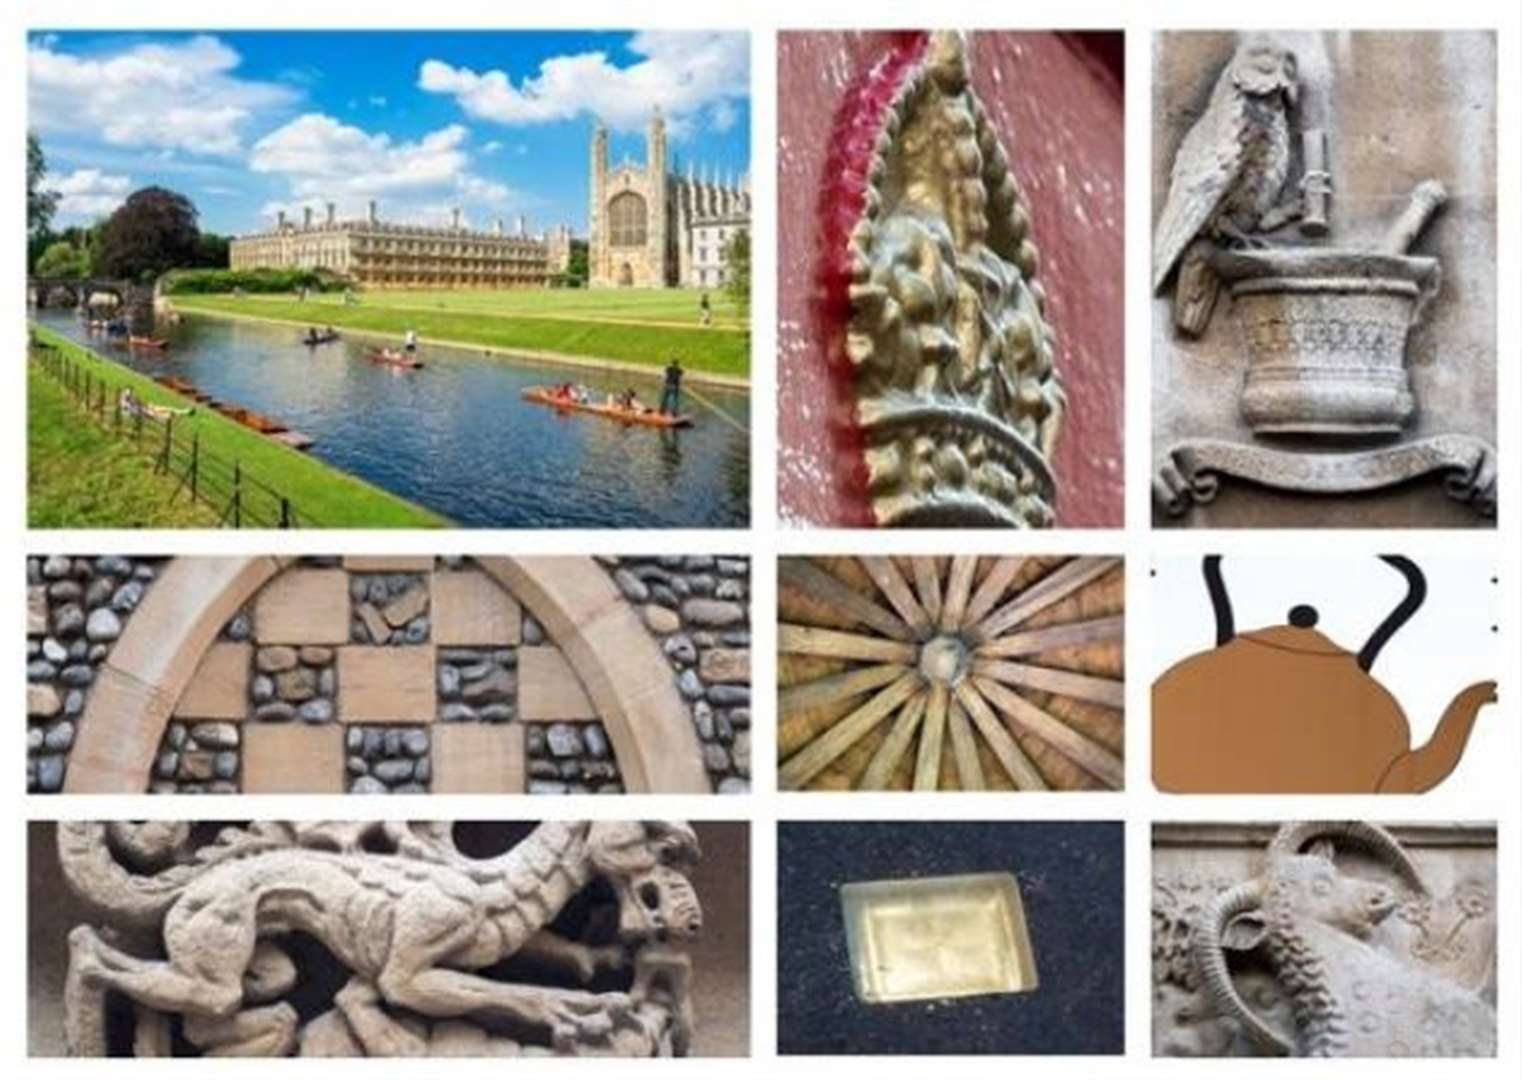 How well do you know Cambridge?